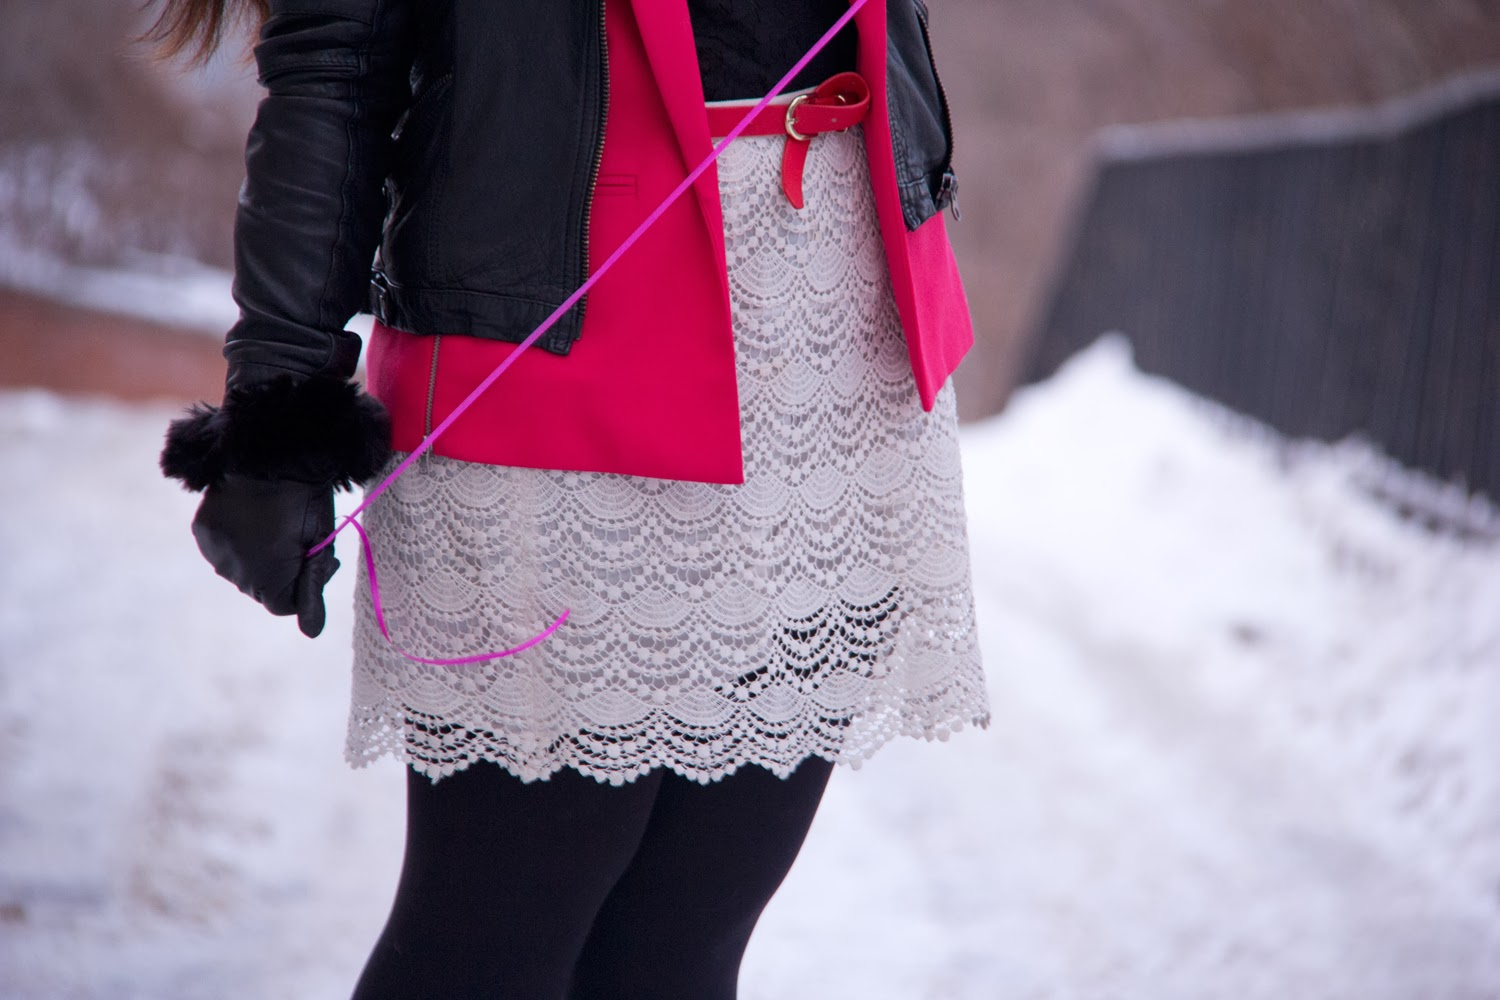 Lace-Skirt, Pink-Blazer, LeChateau-Gloves, Black-Leather-Jacket, Winter-Outfit